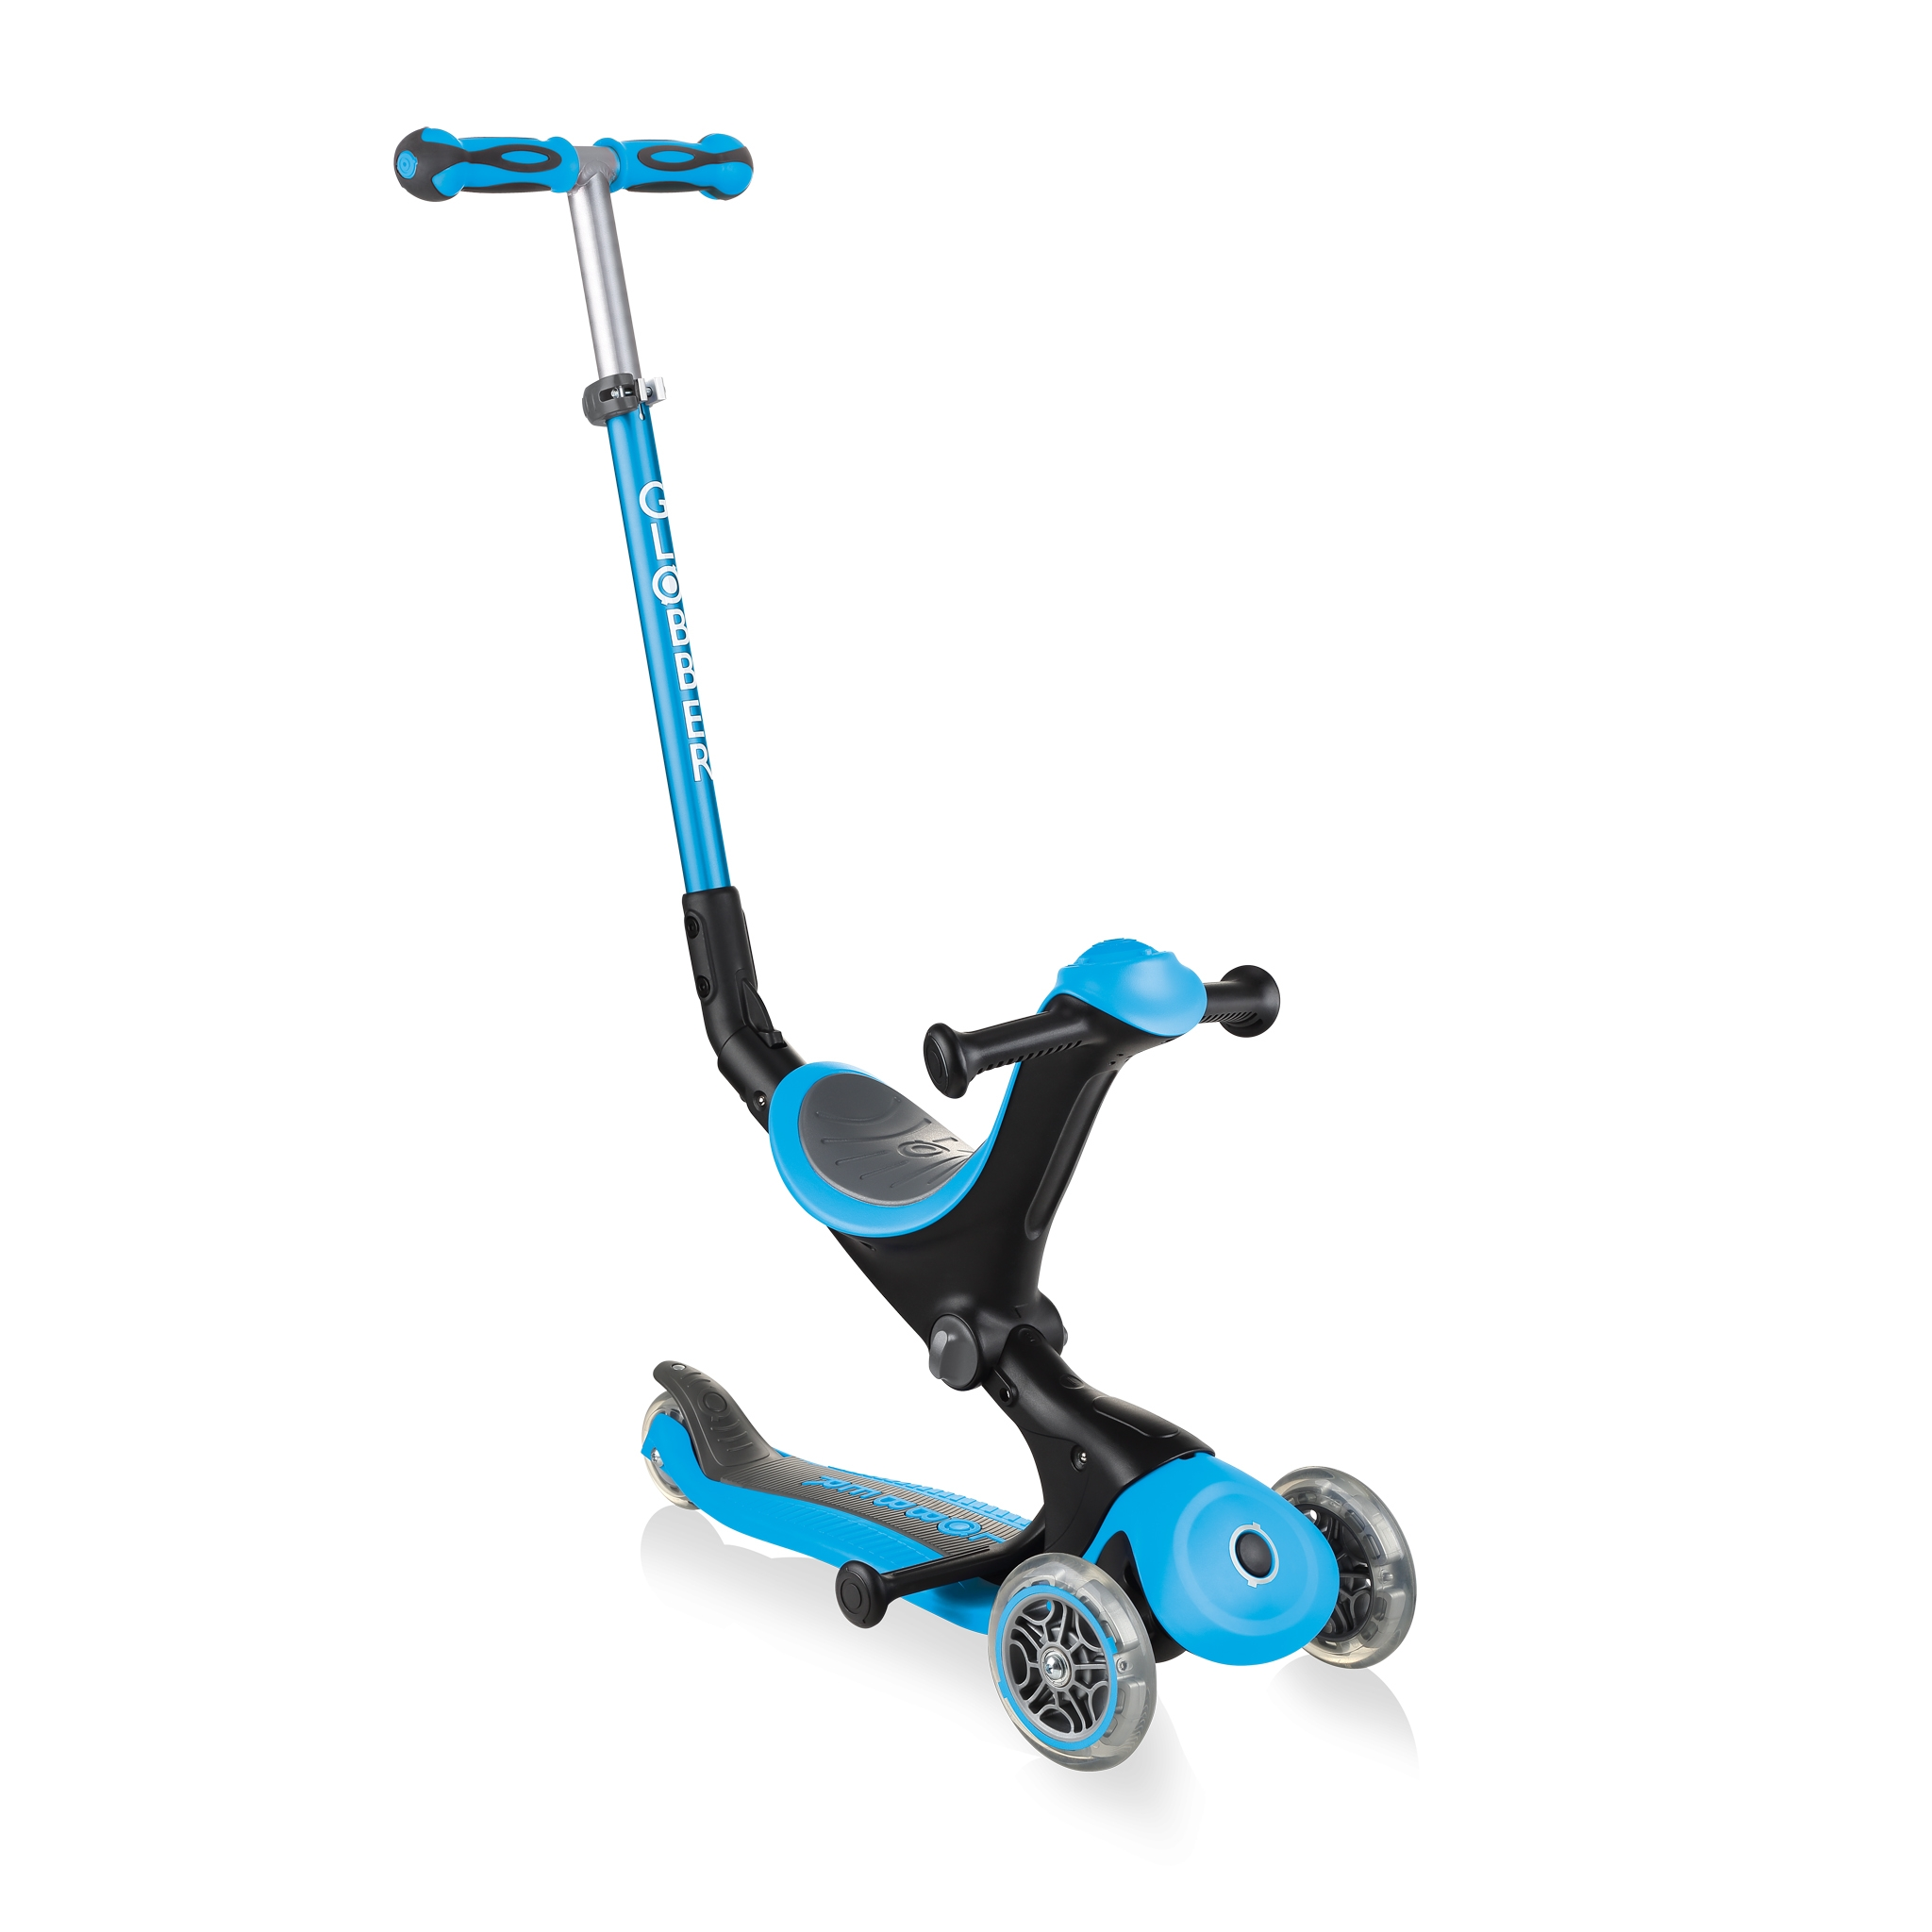 GO-UP-DELUXE-ride-on-walking-bike-scooter-sky-blue 0